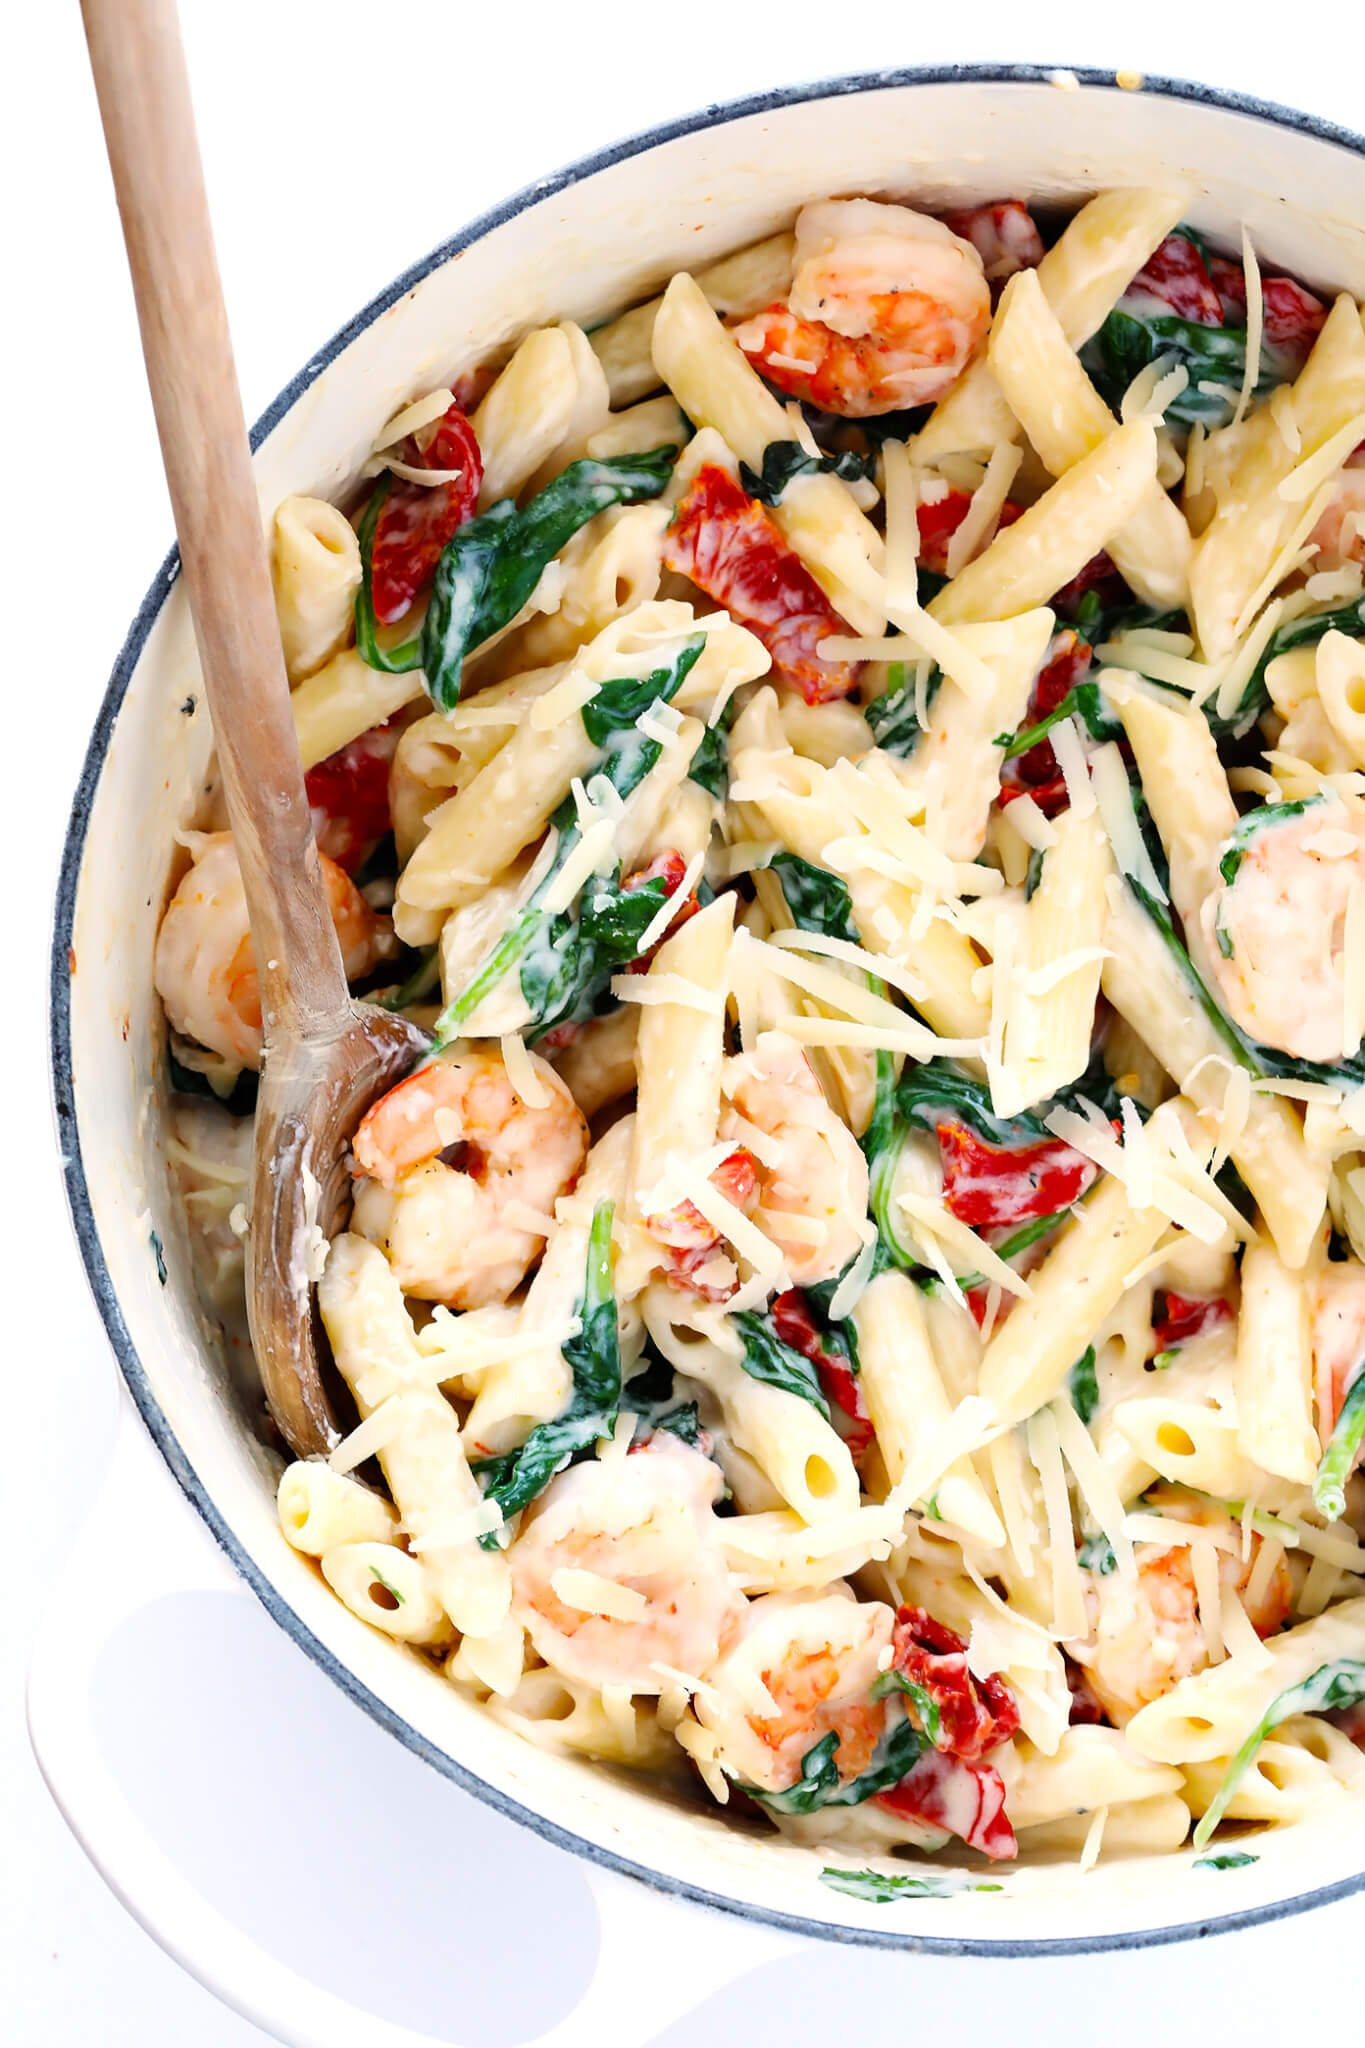 This Creamy Shrimp Florentine Pasta recipe is made with lots of Parmesan, sun-dried tomatoes and spinach, and tossed in a heavenly cream sauce. So delicious! | gimmesomeoven.com